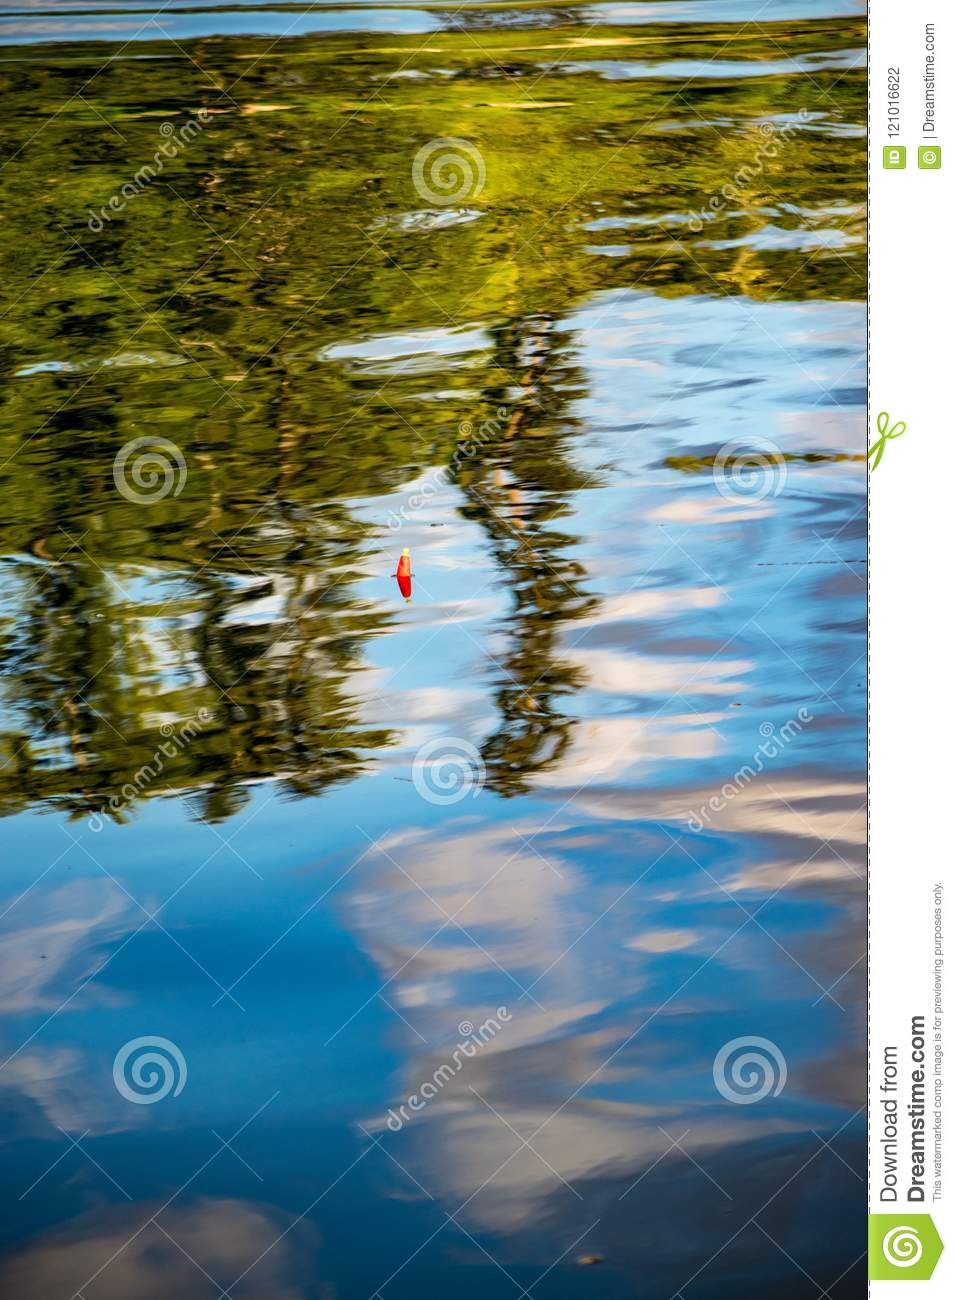 Fishing in a reflection